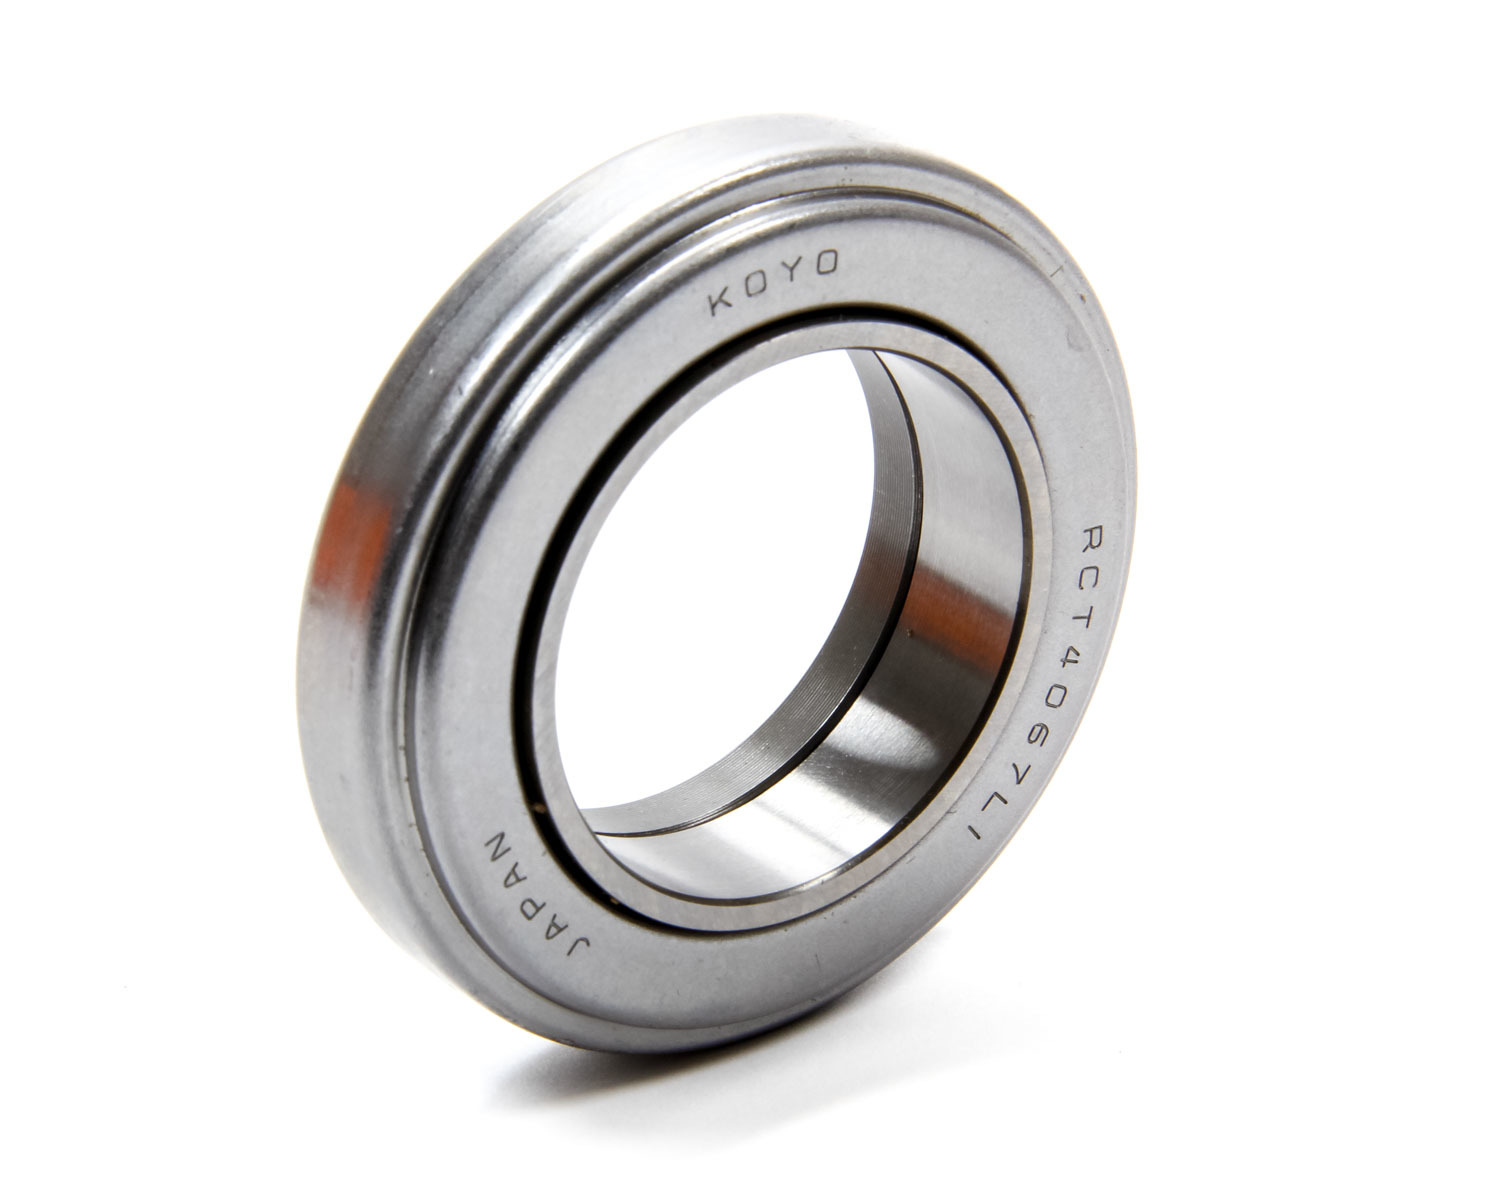 Quarter Master 105030 Throwout Bearing, Replacement Bearing Only, Quarter Master Tri-Lite Throwout Bearings, Each